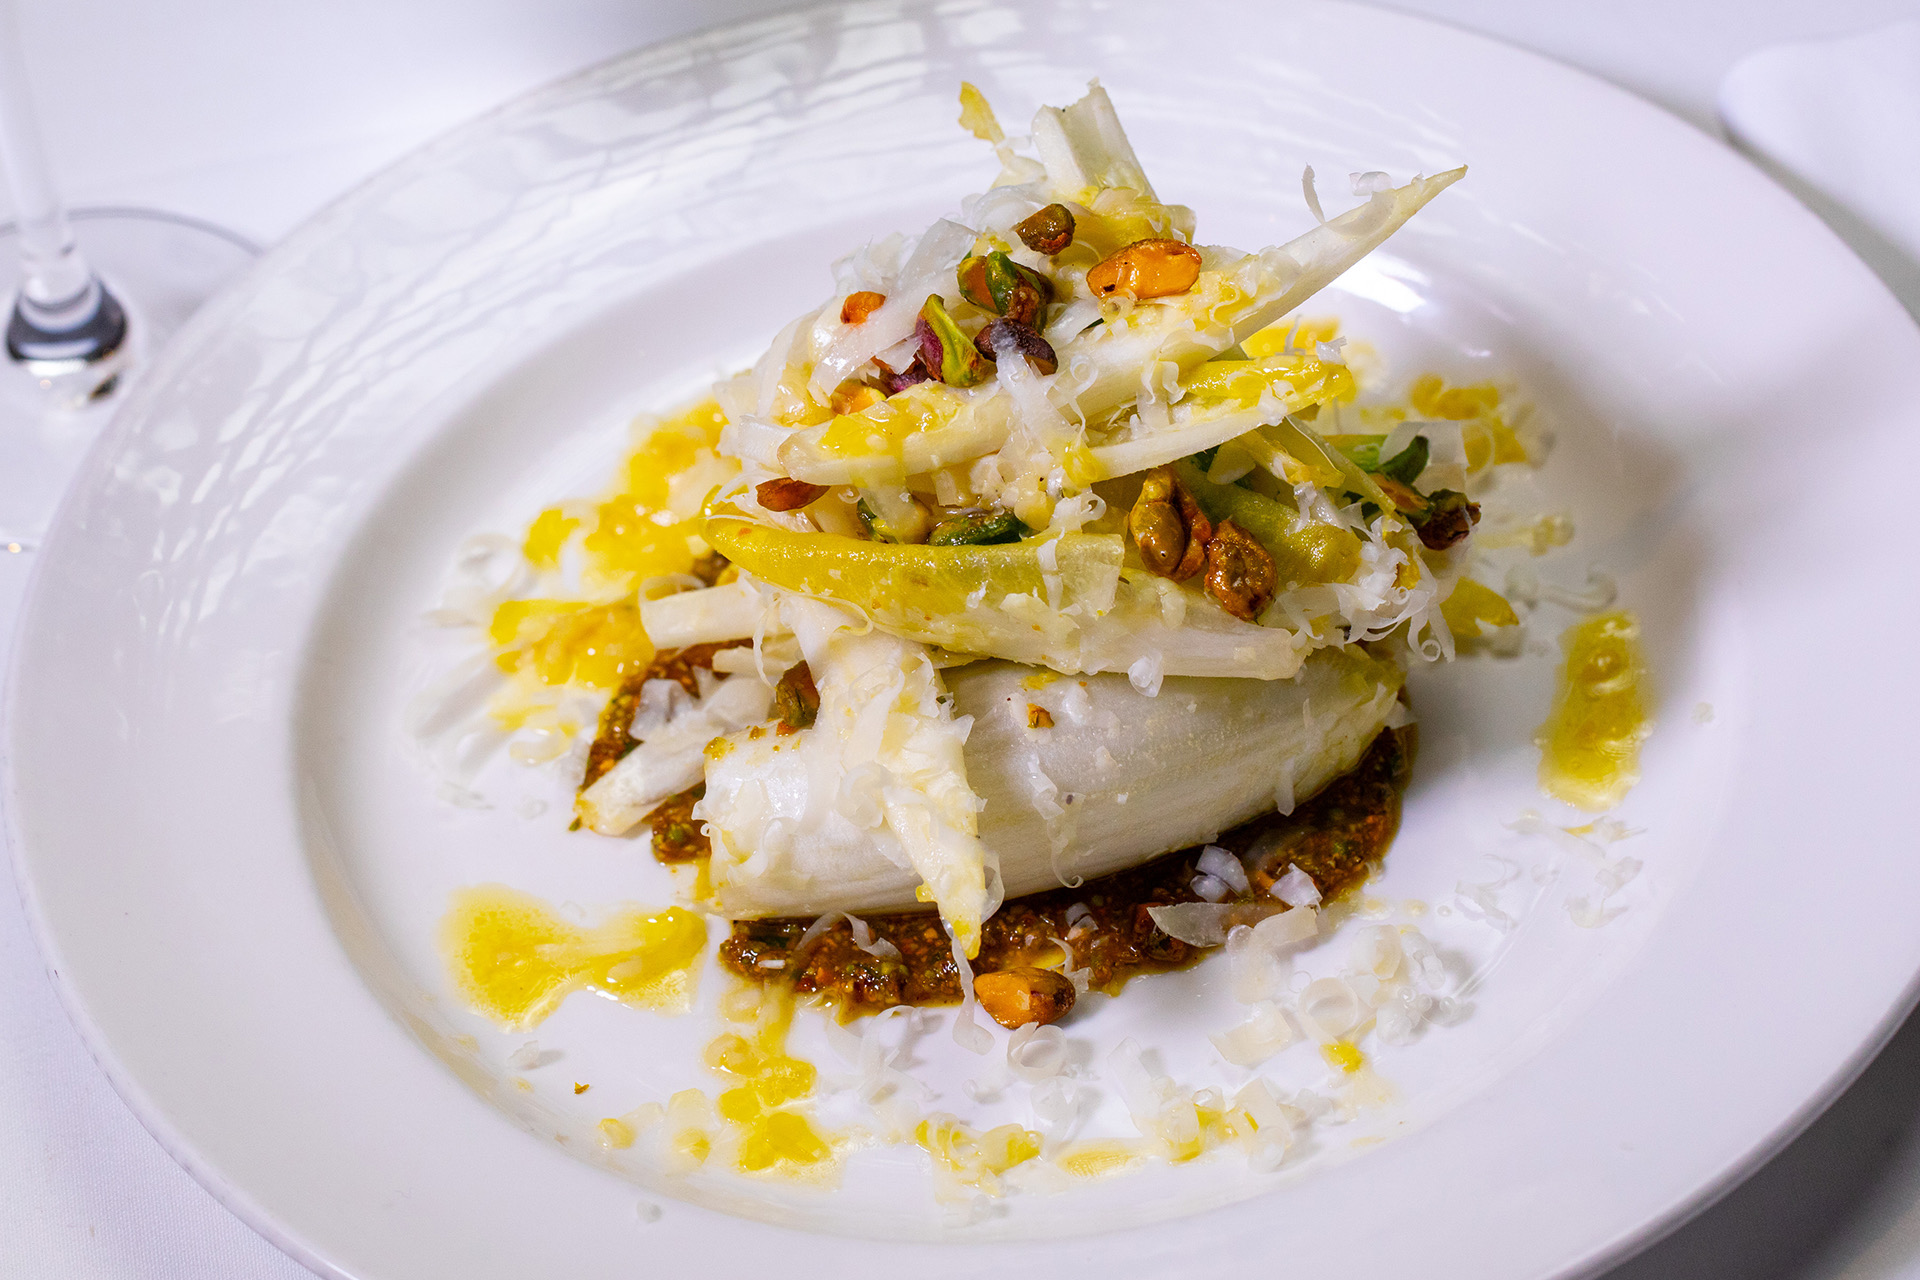 Endive Salad with Avocado Piave and Pistachio Aillade